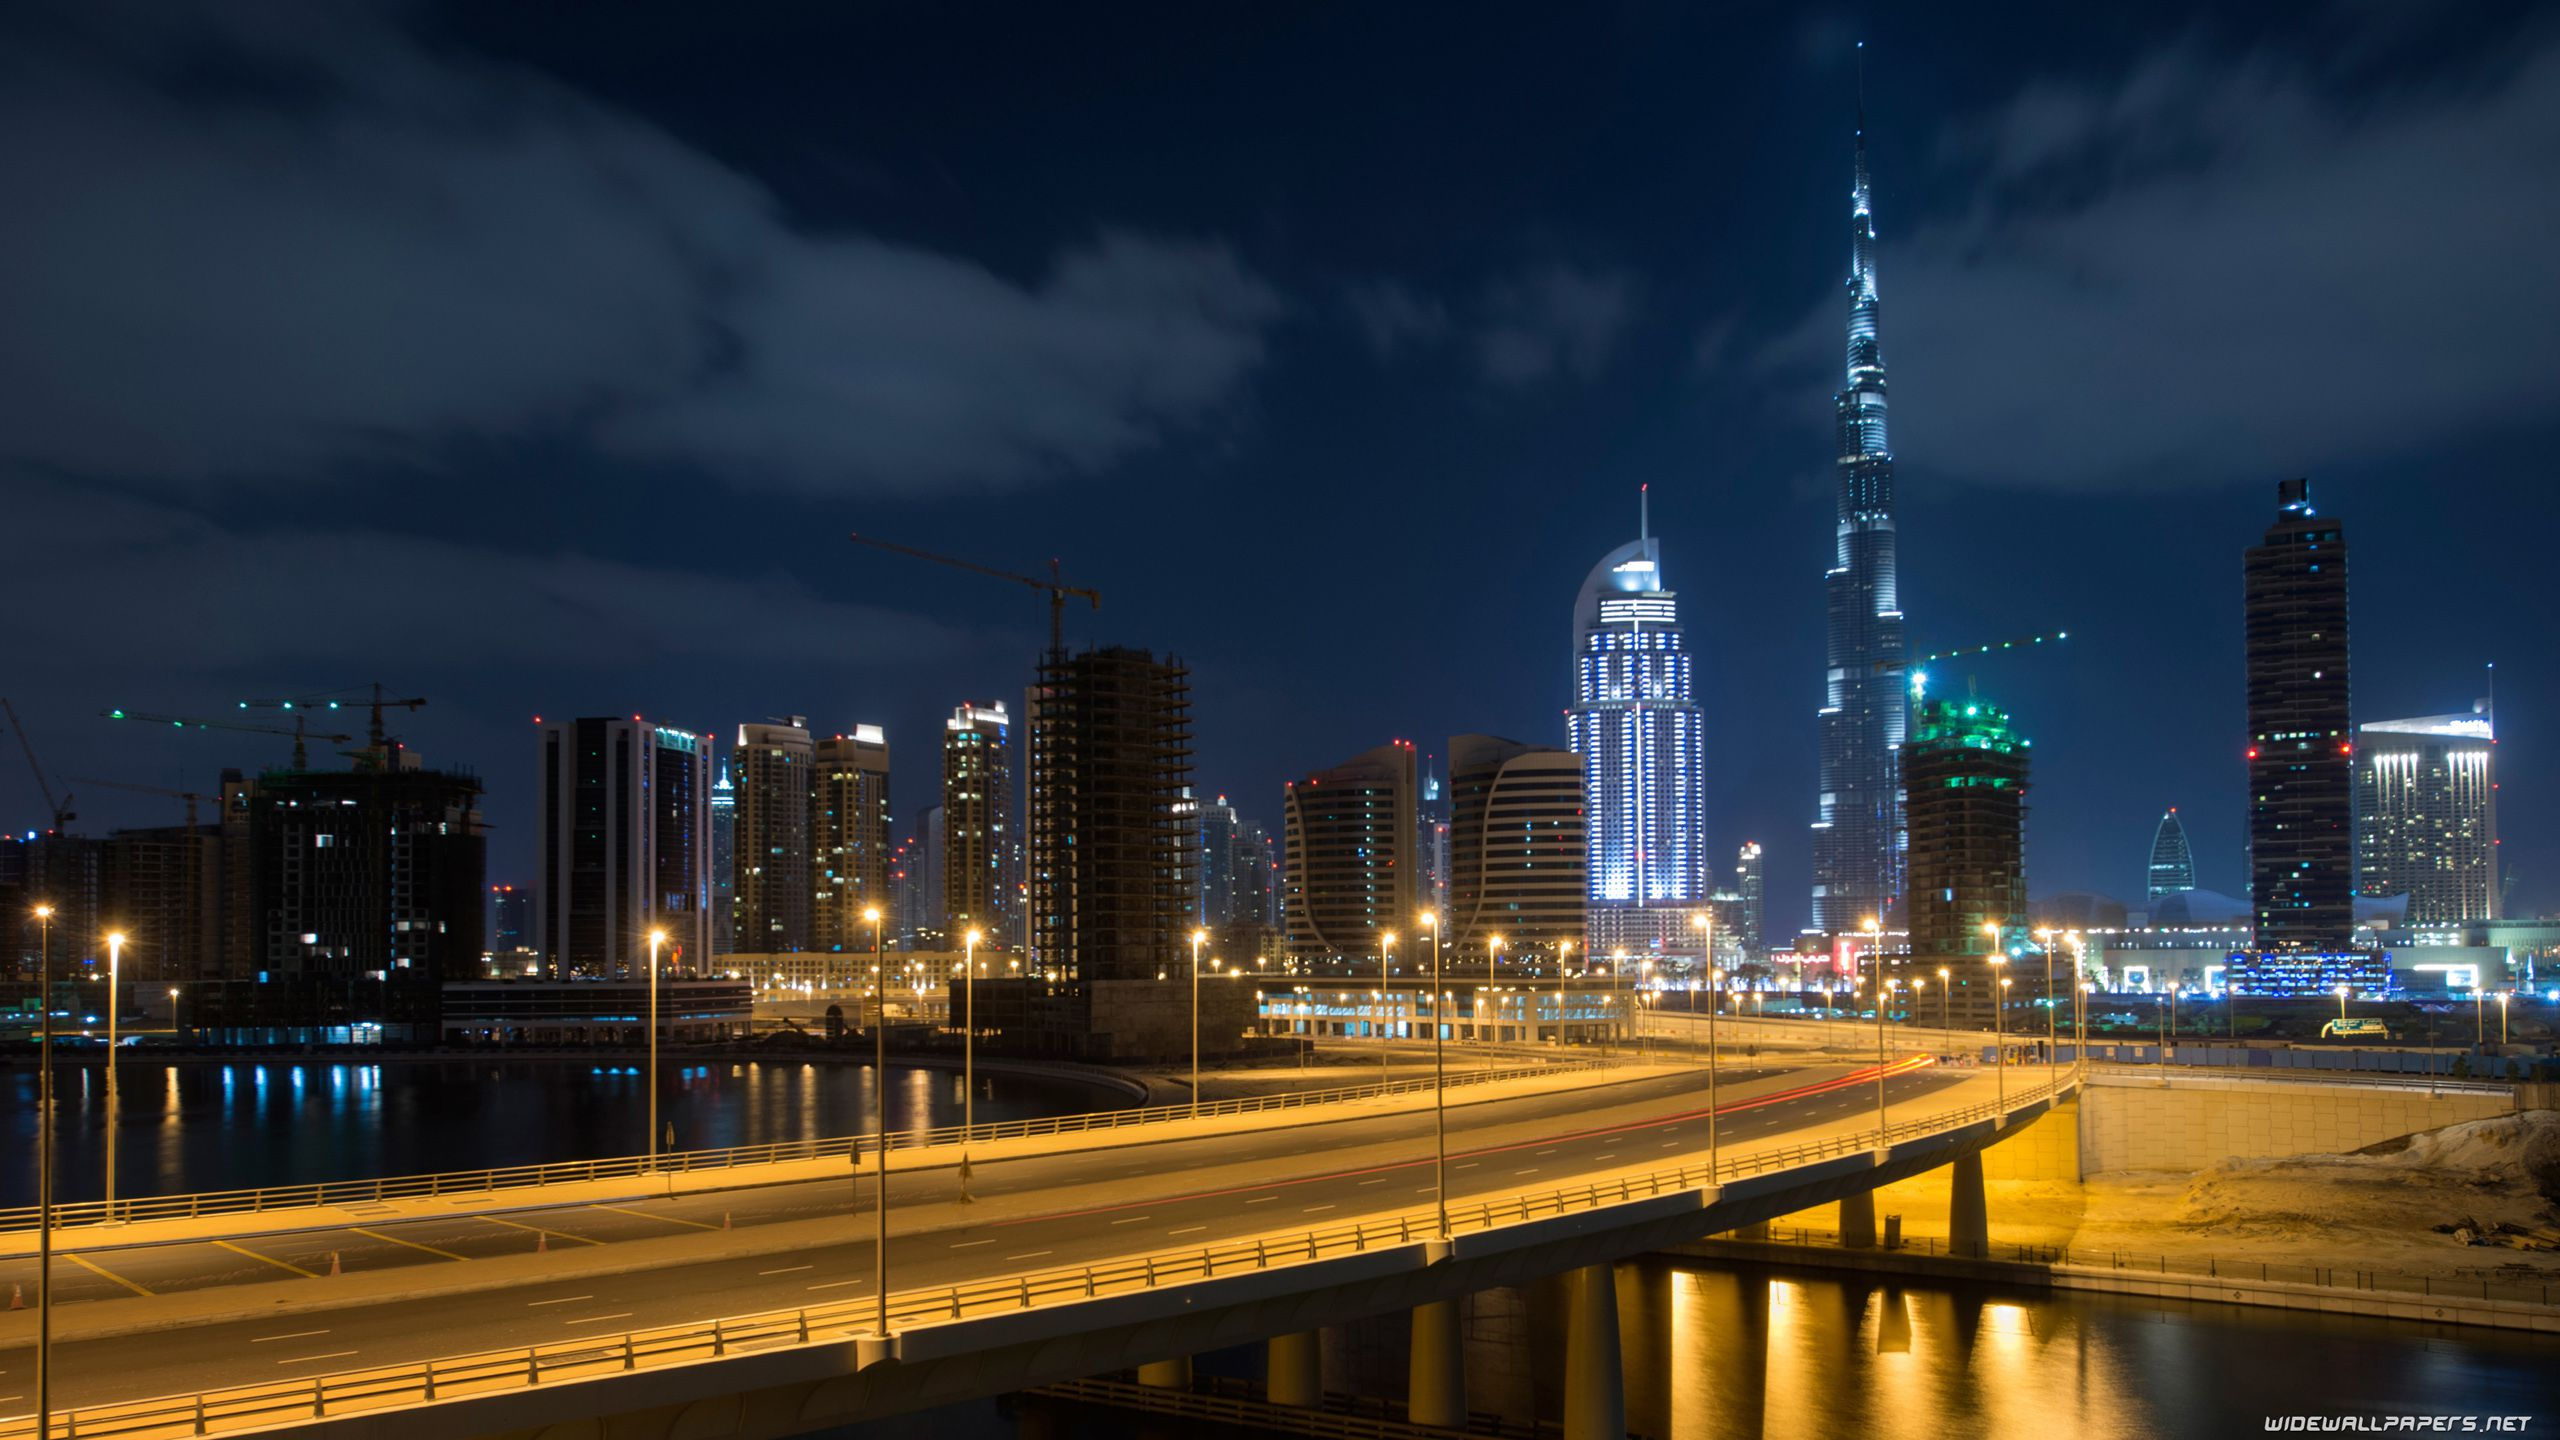 dubai wallpapers and photos 4k full hd | everes hill